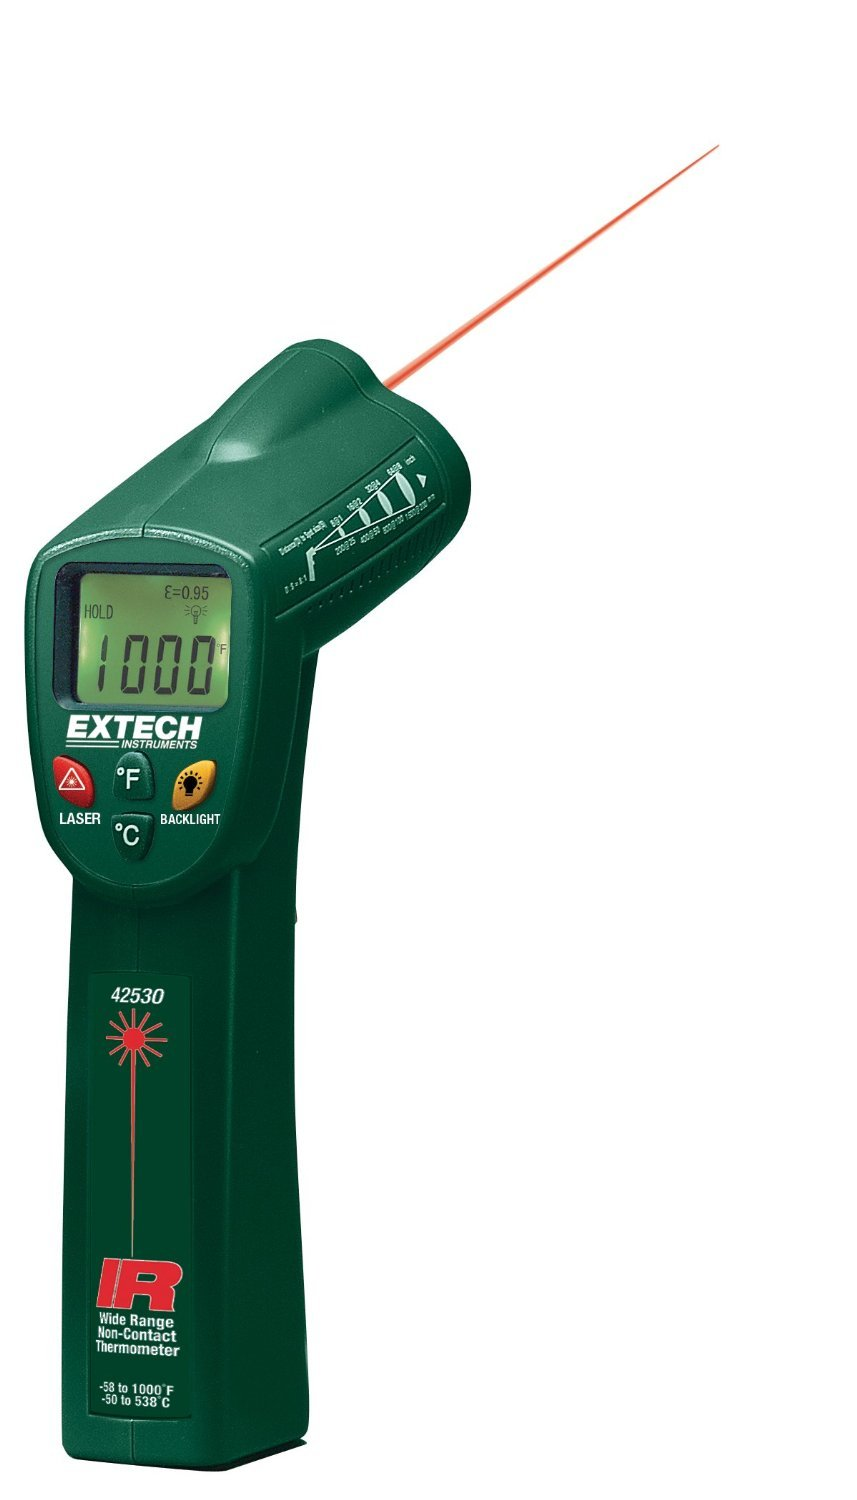 Extech 42530-NIST Wide Range IR Thermometer with NIST